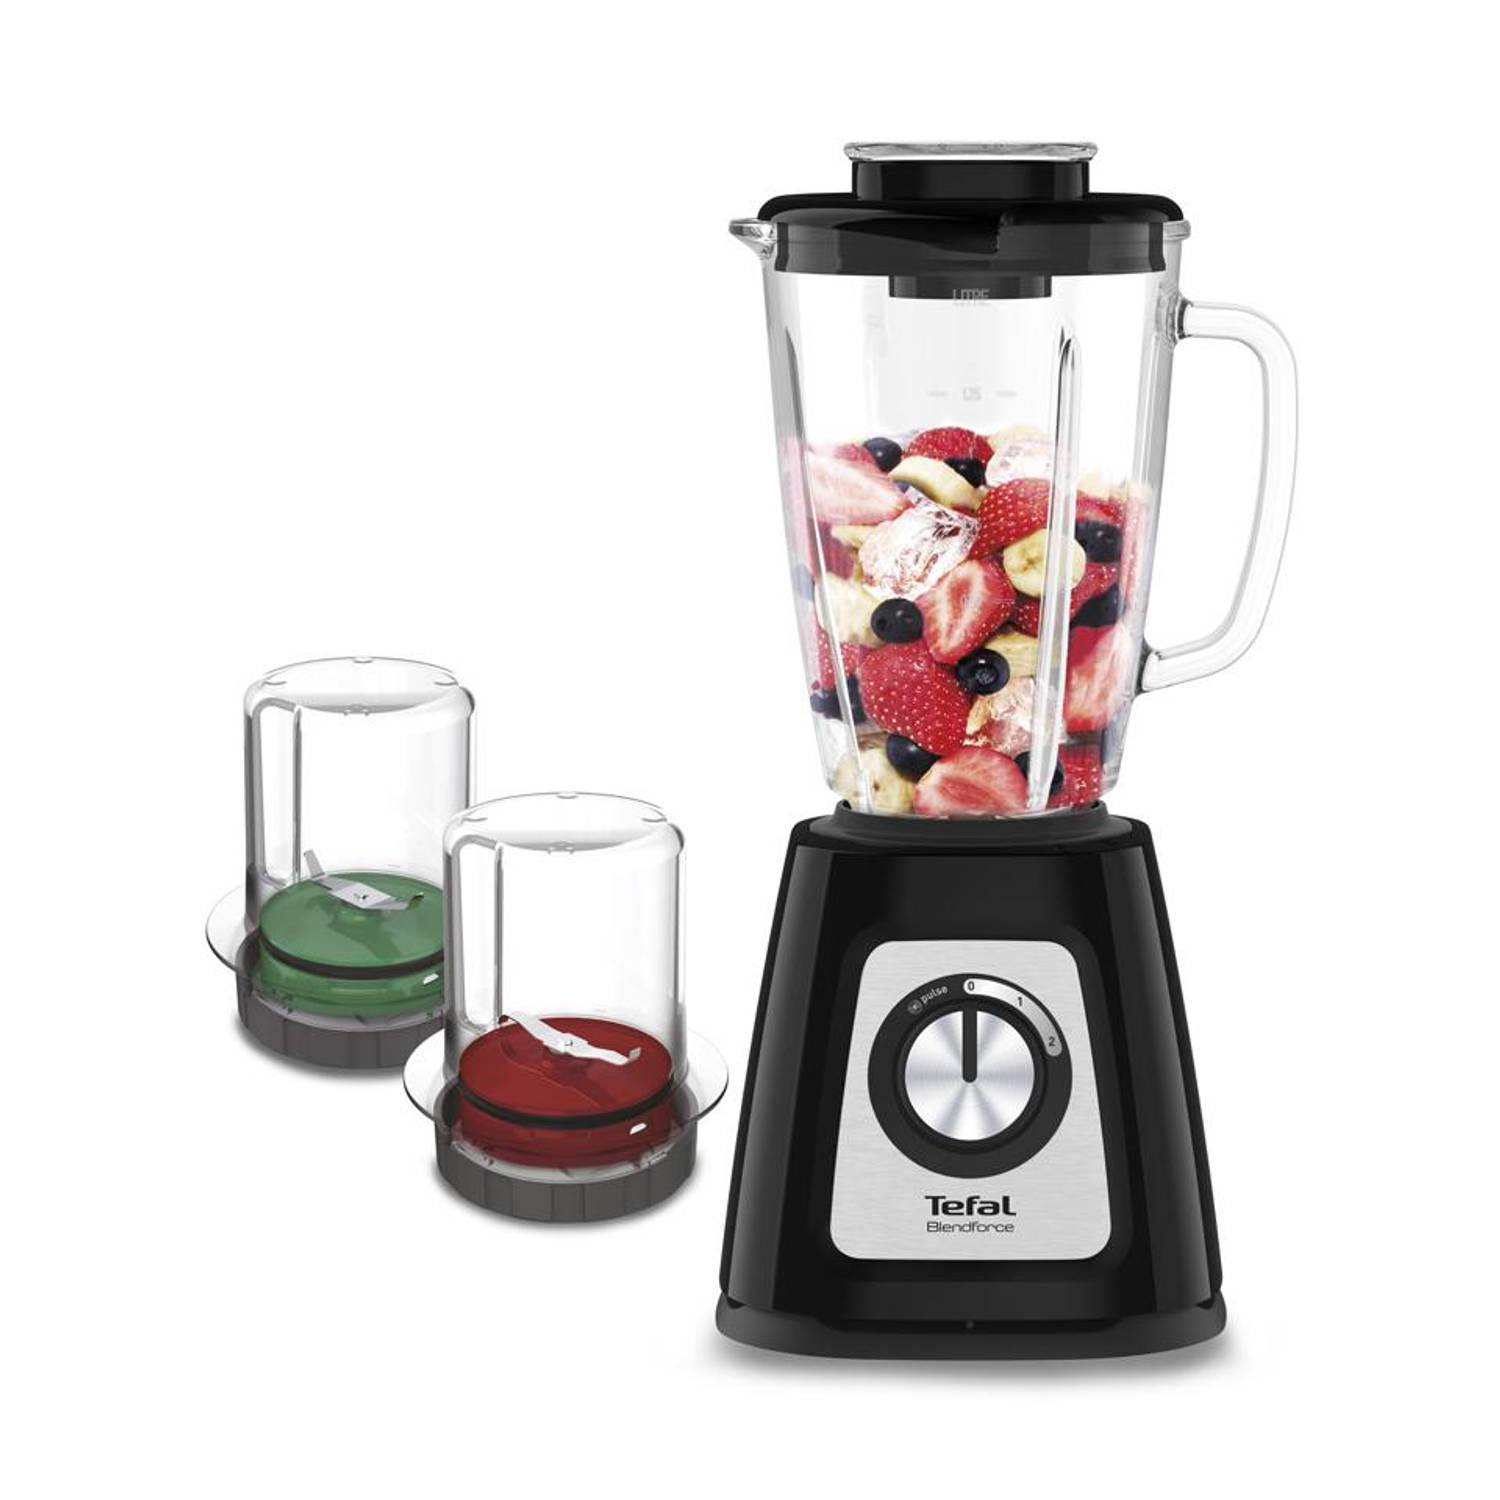 Tefal blender Blendforce II BL4388